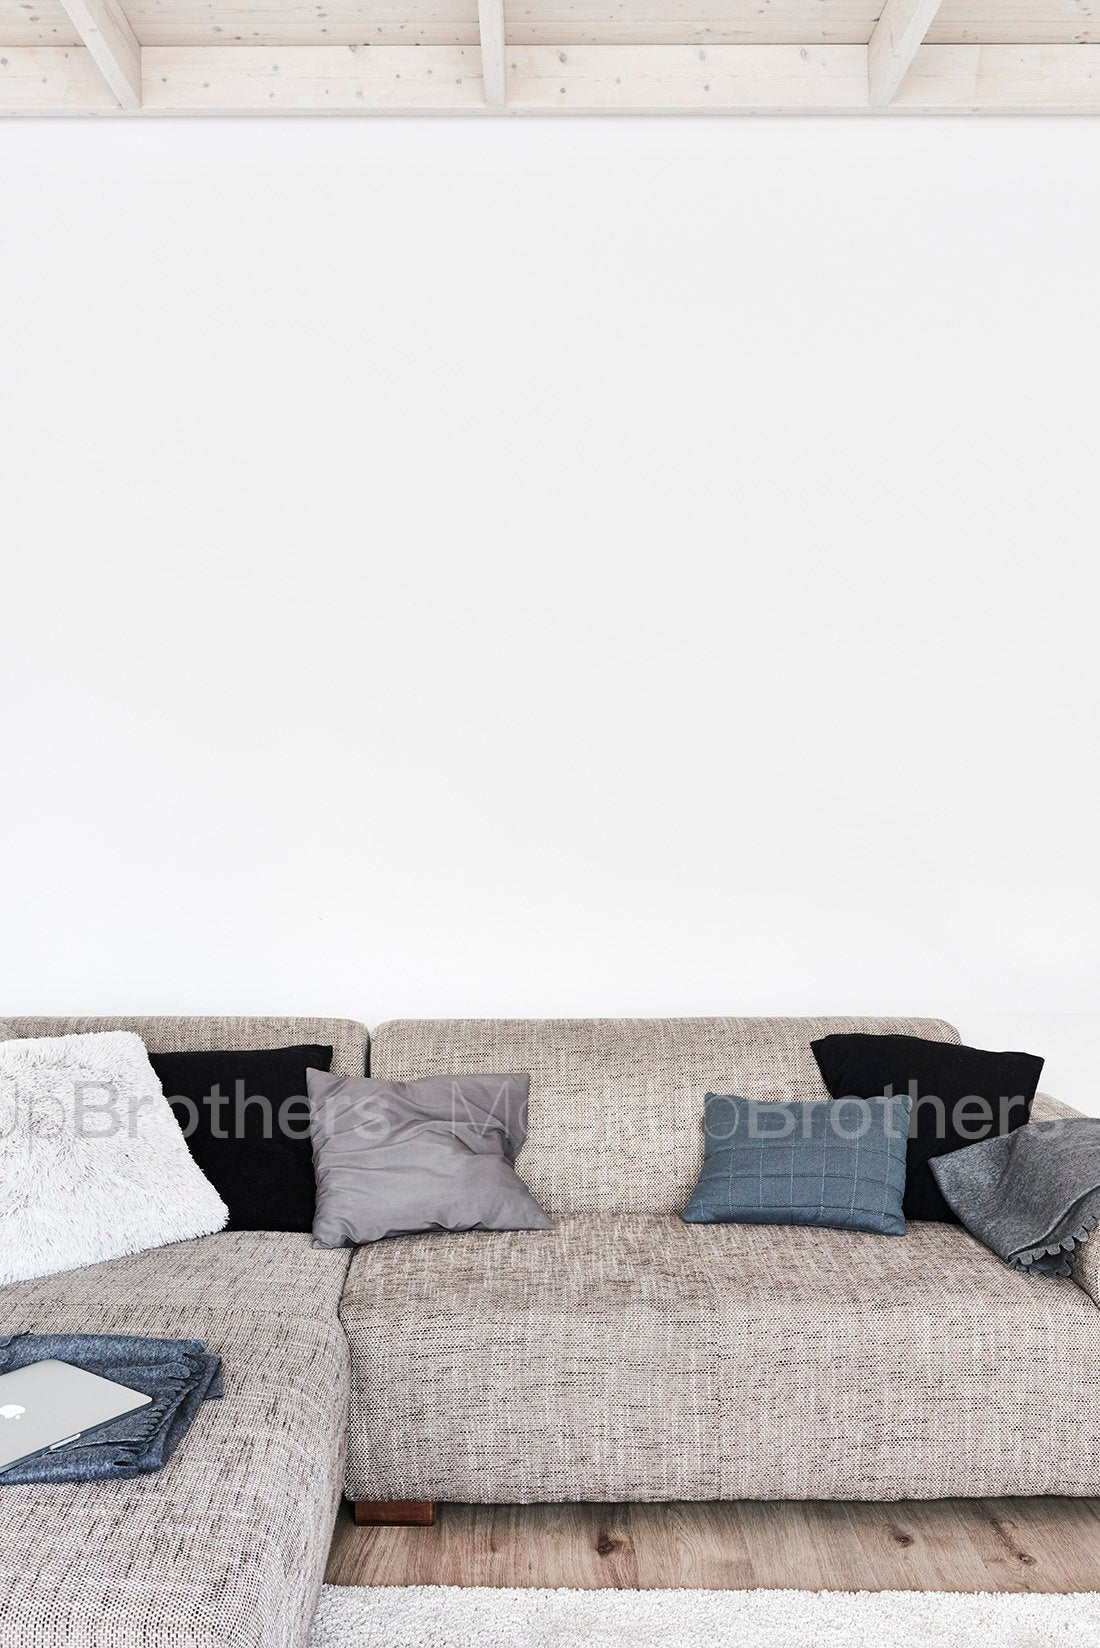 Large wall stock photo by MOckup Brothers